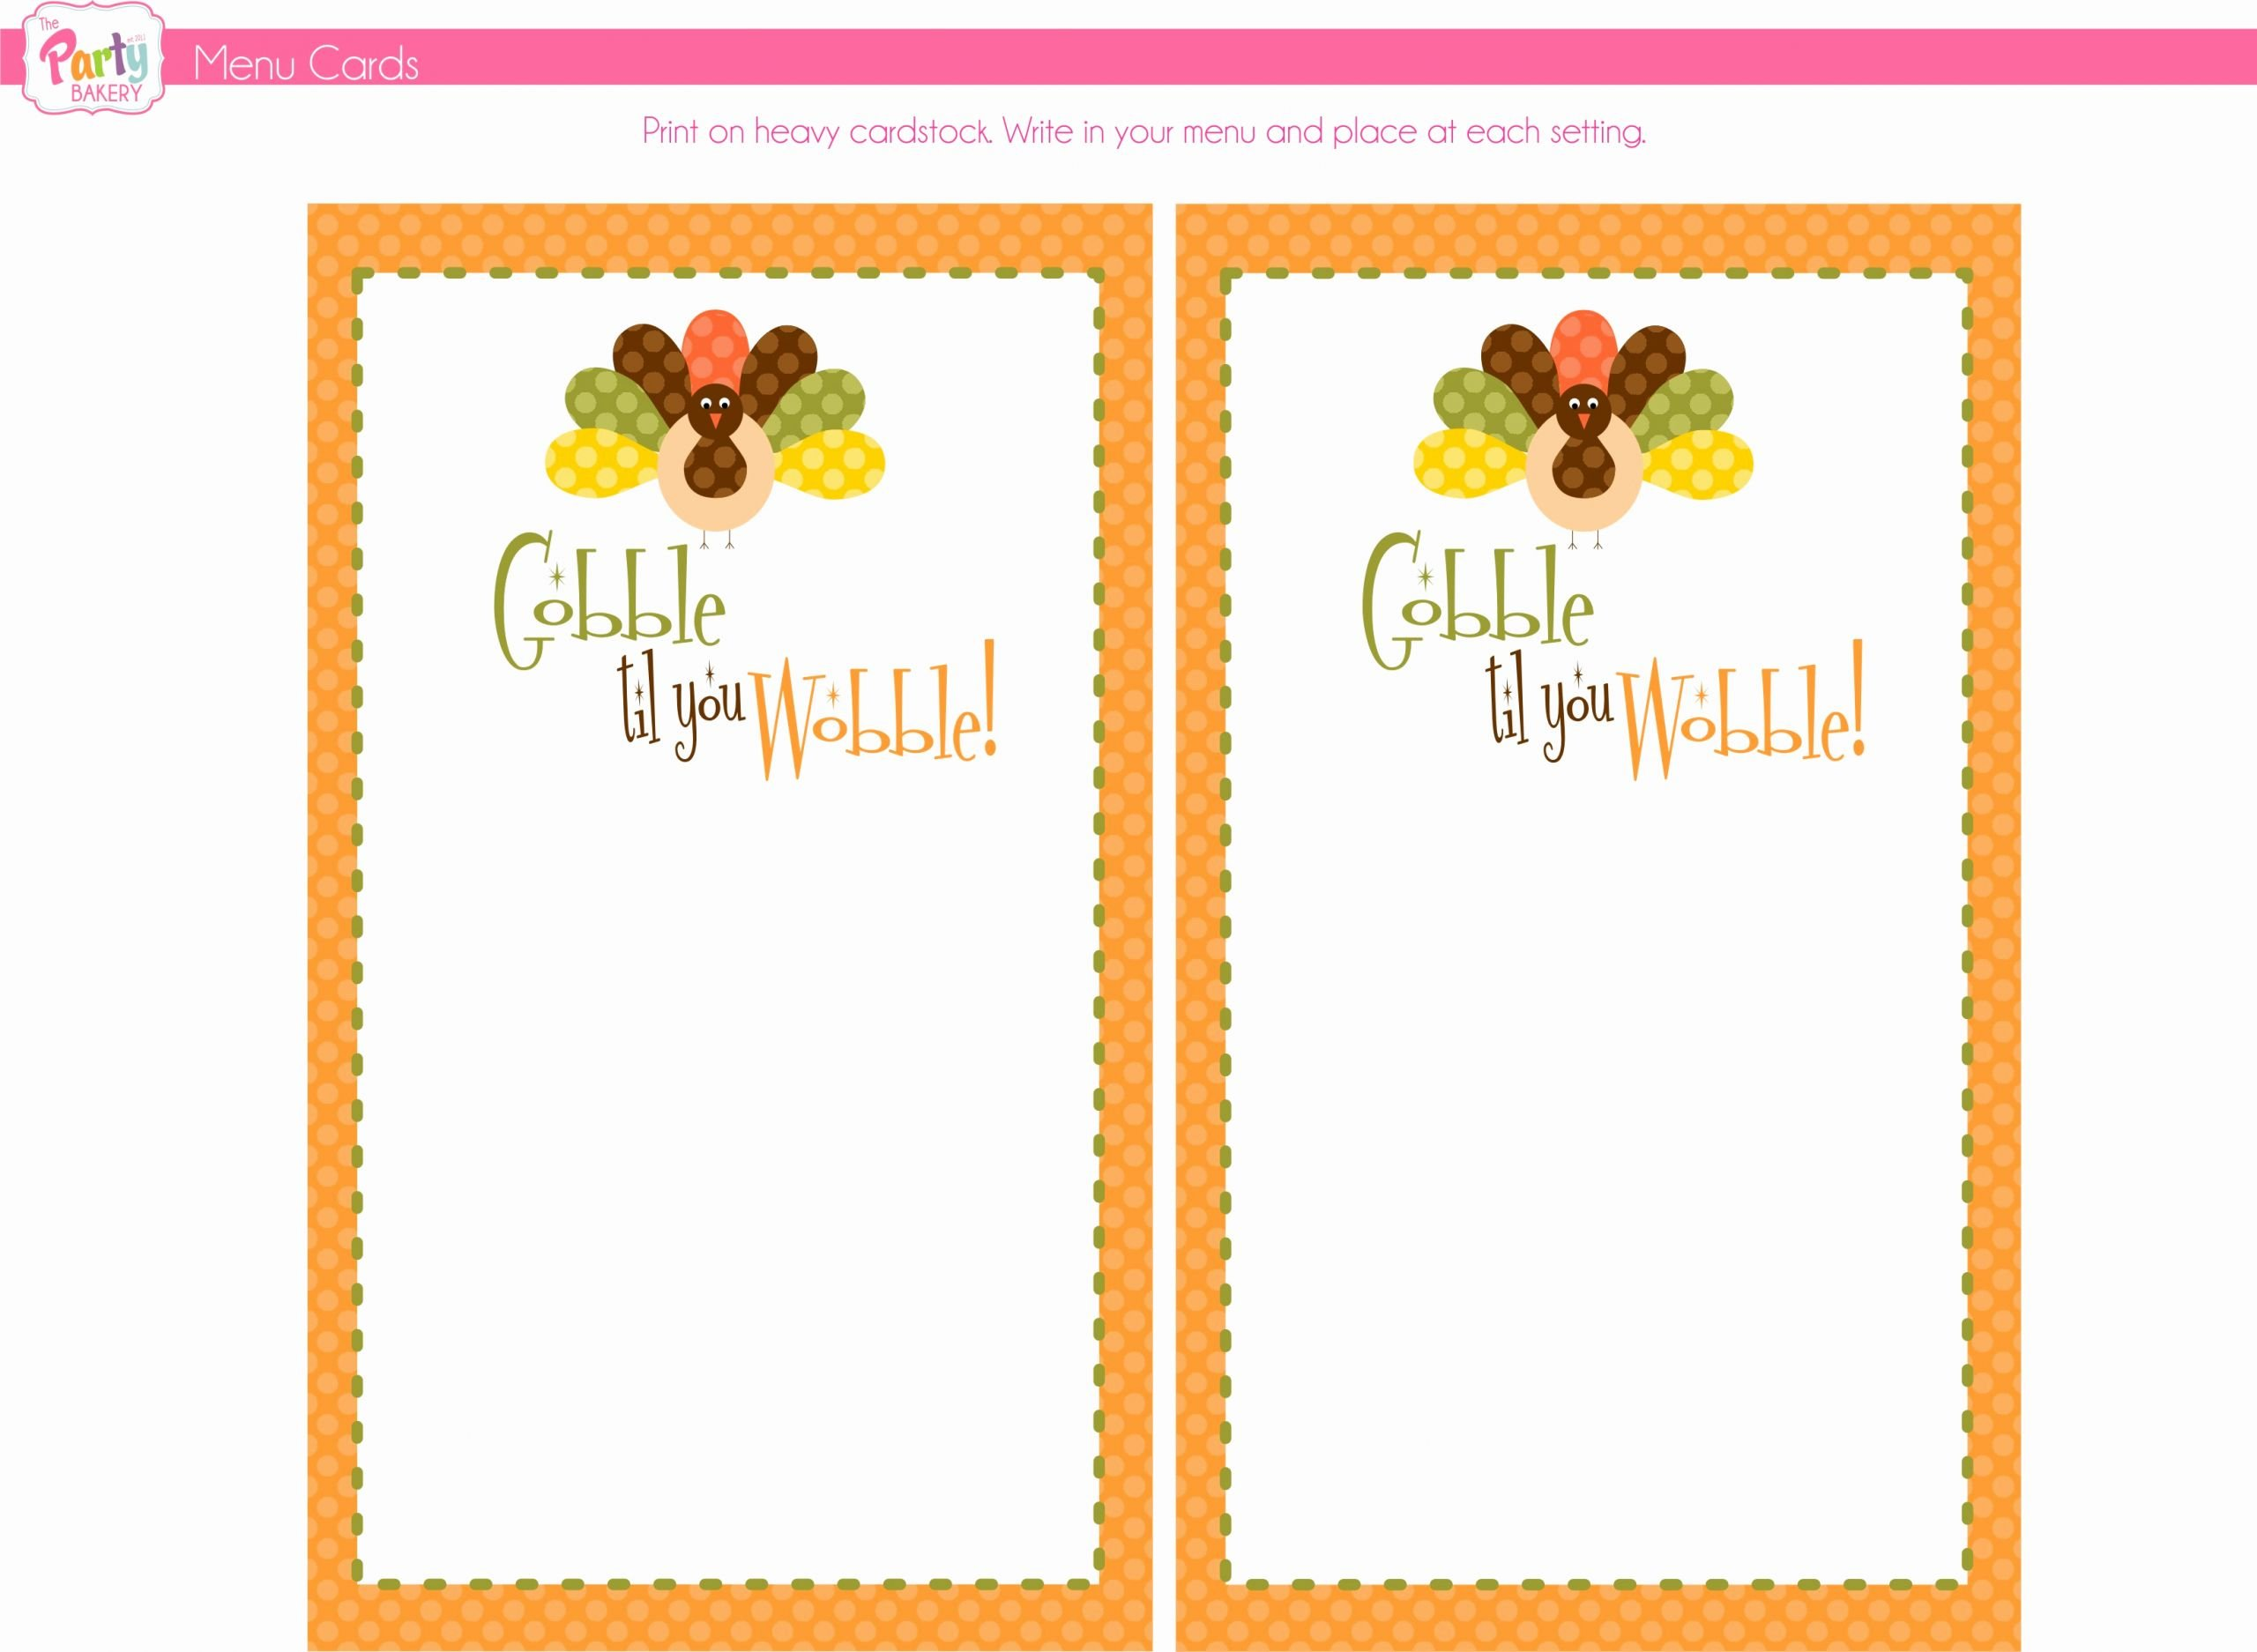 Blank Menu Template Free Awesome Free Thanksgiving Printables From the Party Bakery